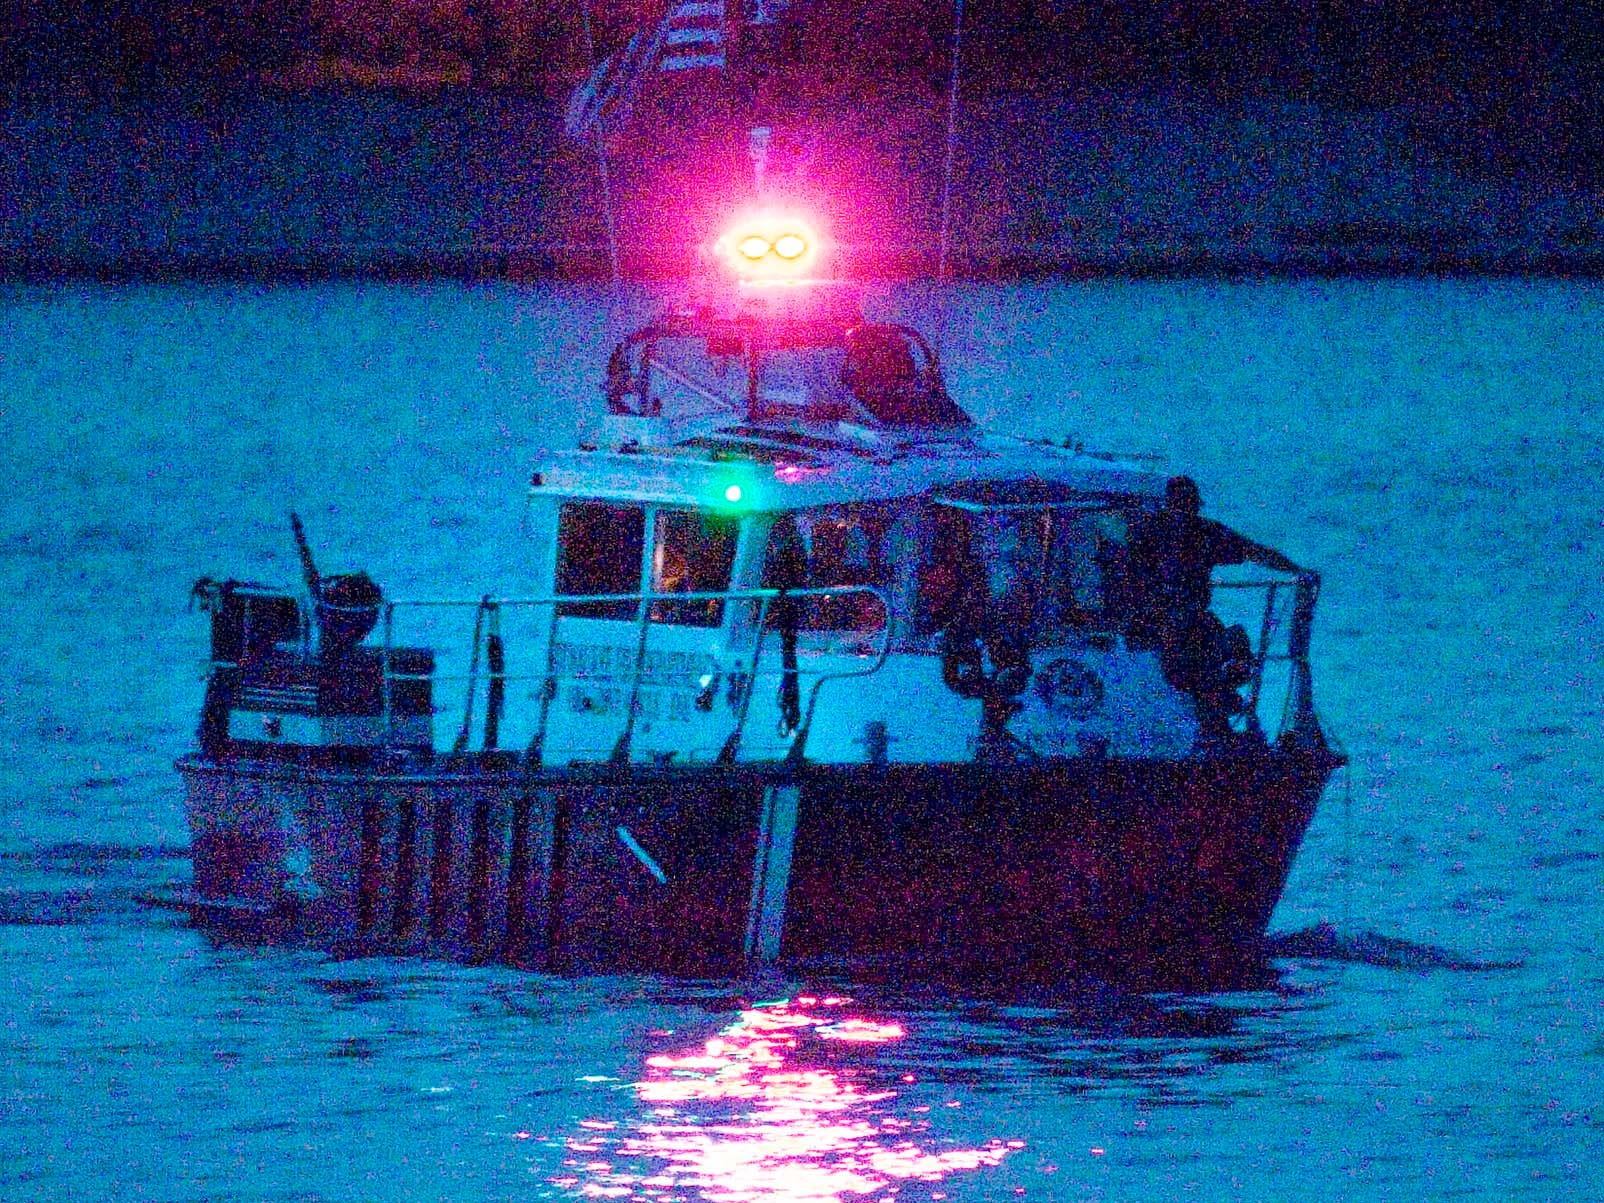 Rescue officials scan the waters of the Sheboygan, Wis. lakefront into the evening on Aug. 11, 2008, for John Duong. Duong, 15, of 2623 N. 36th St., was swept underwater by high waves two days earlier while swimming with four friends at North Beach at Deland Park.   FILE PHOTO